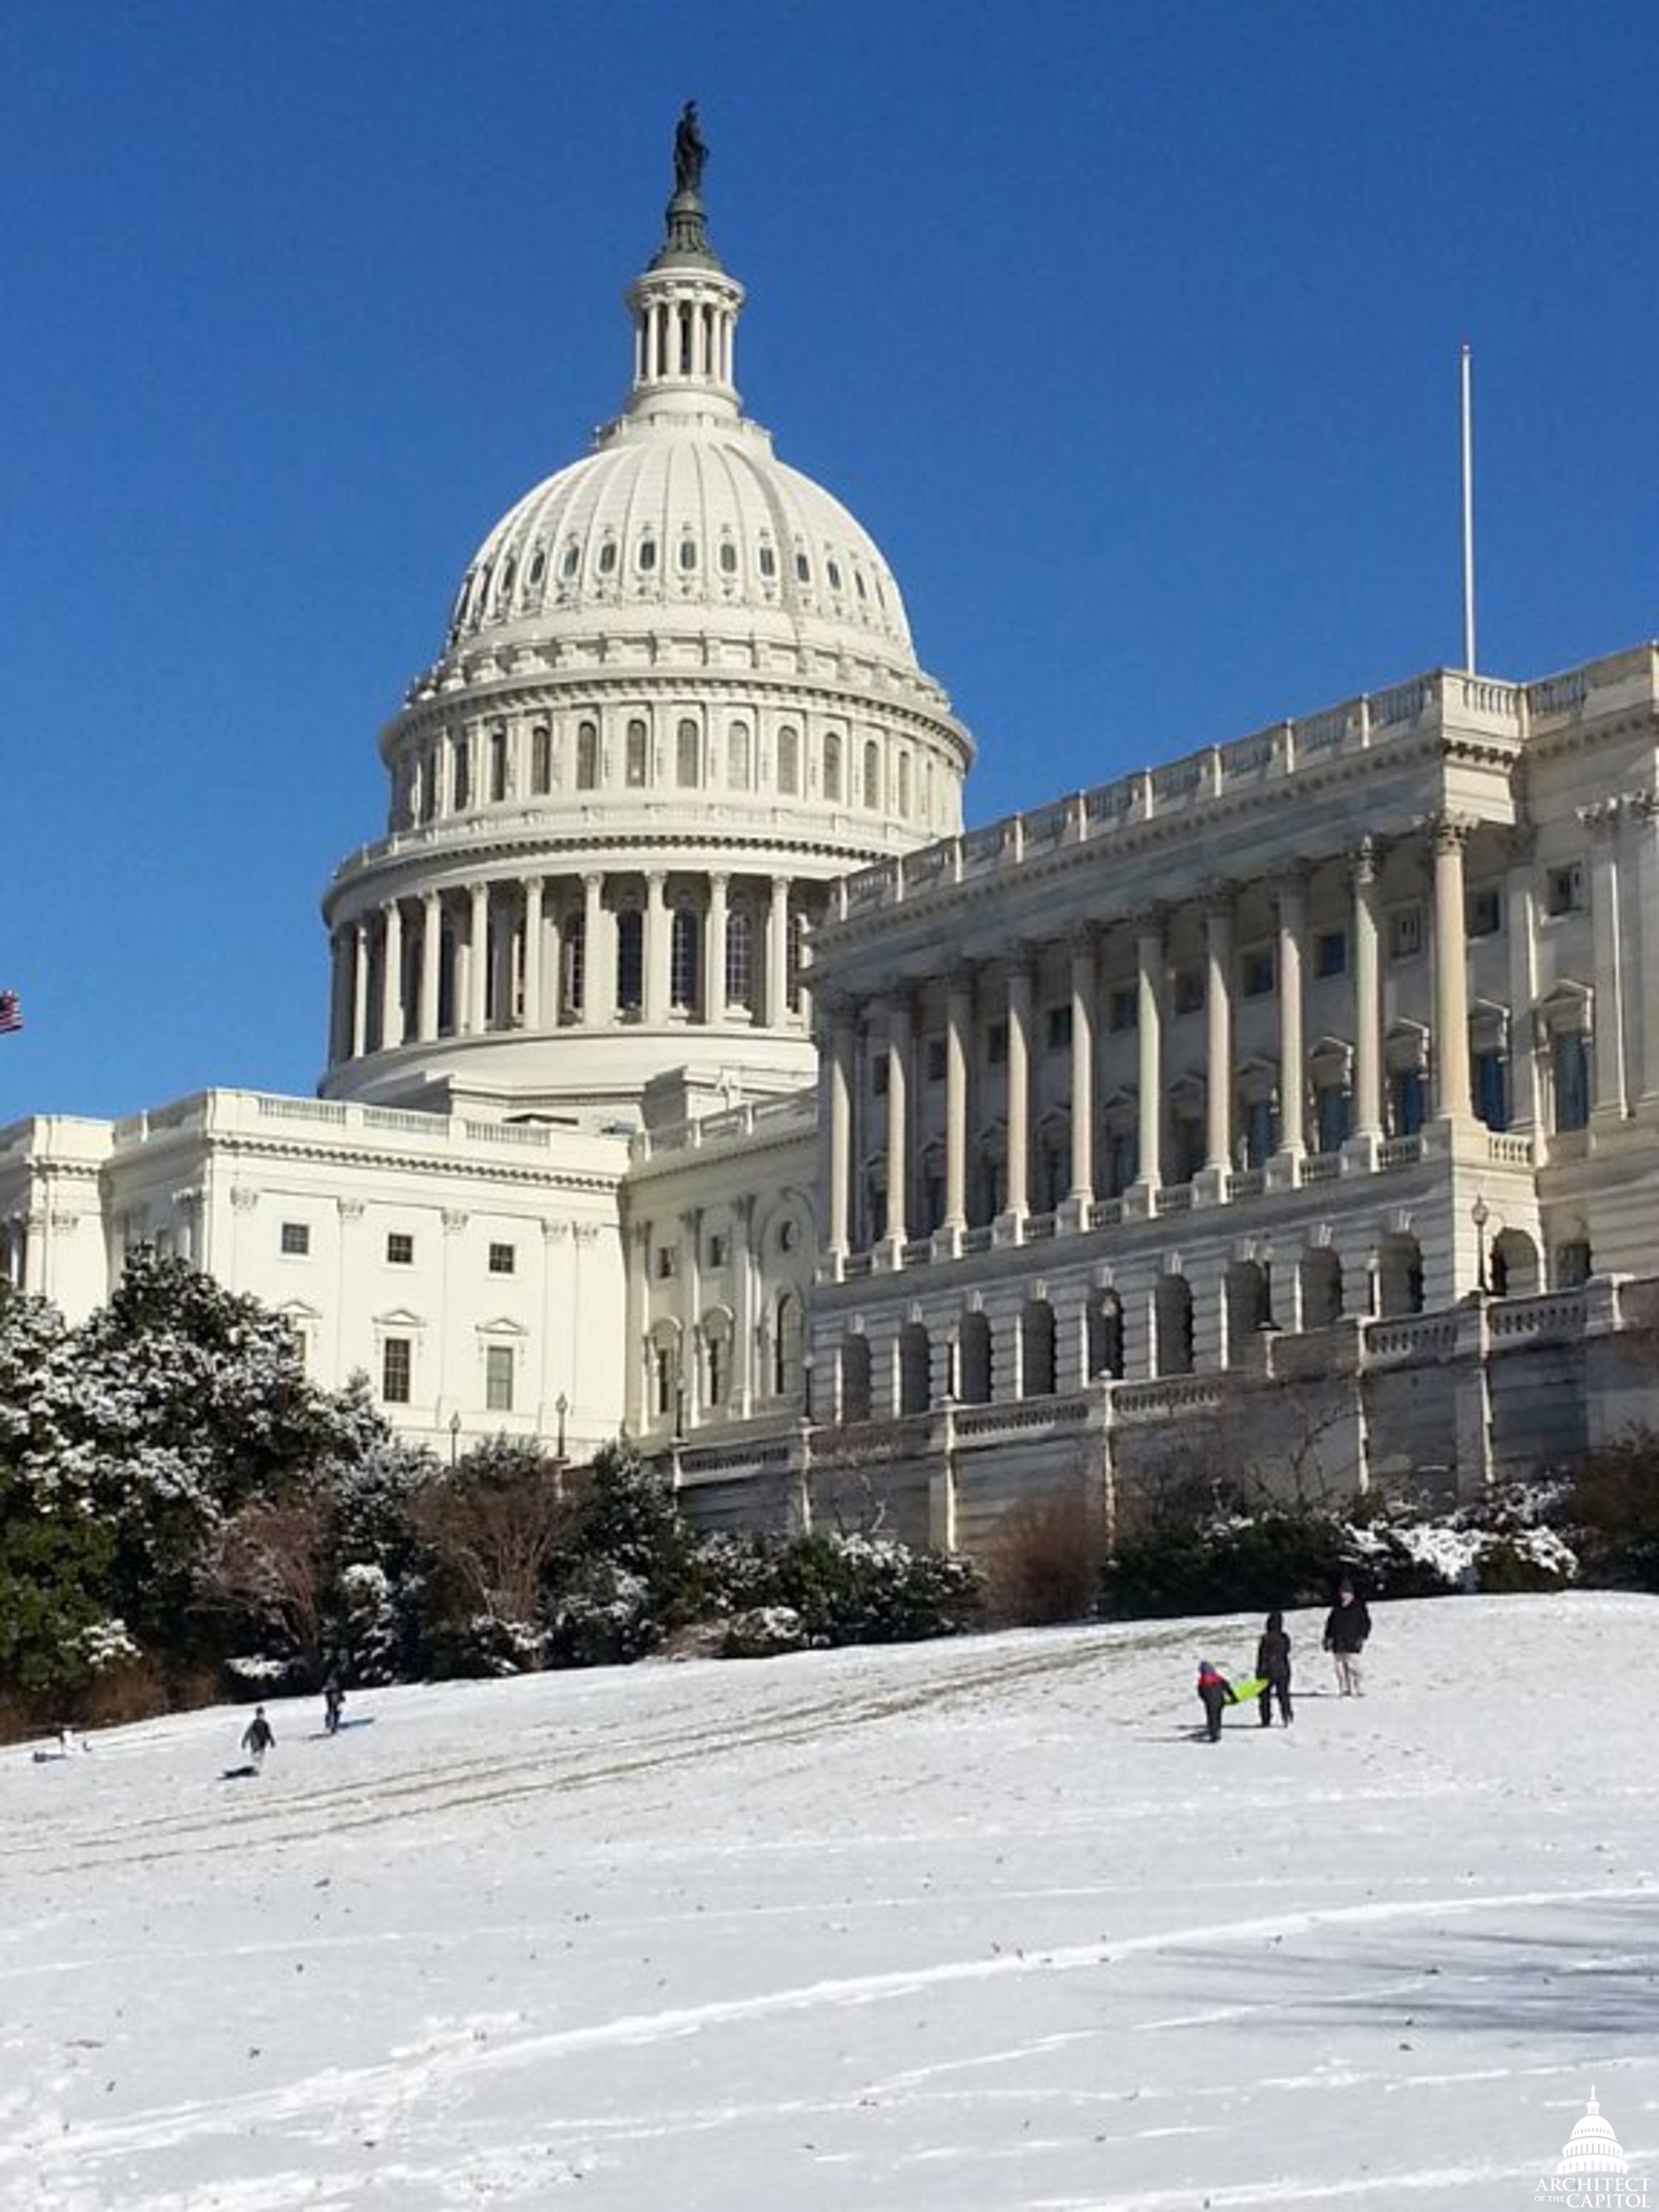 Sledding on the Capitol's West Front in 2014.